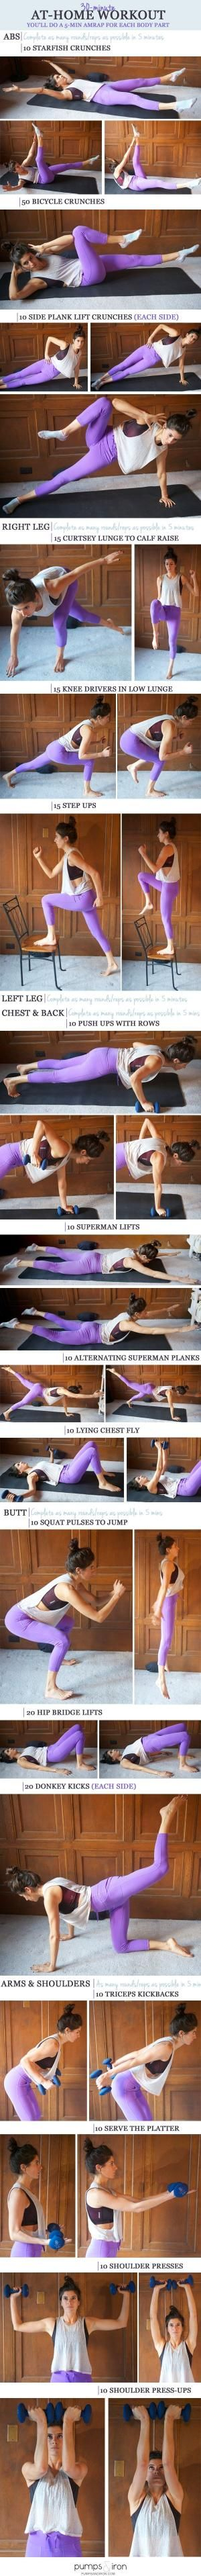 30-Minute At-Home Workout -- you'll spend 5 minutes on each body part by Malesa